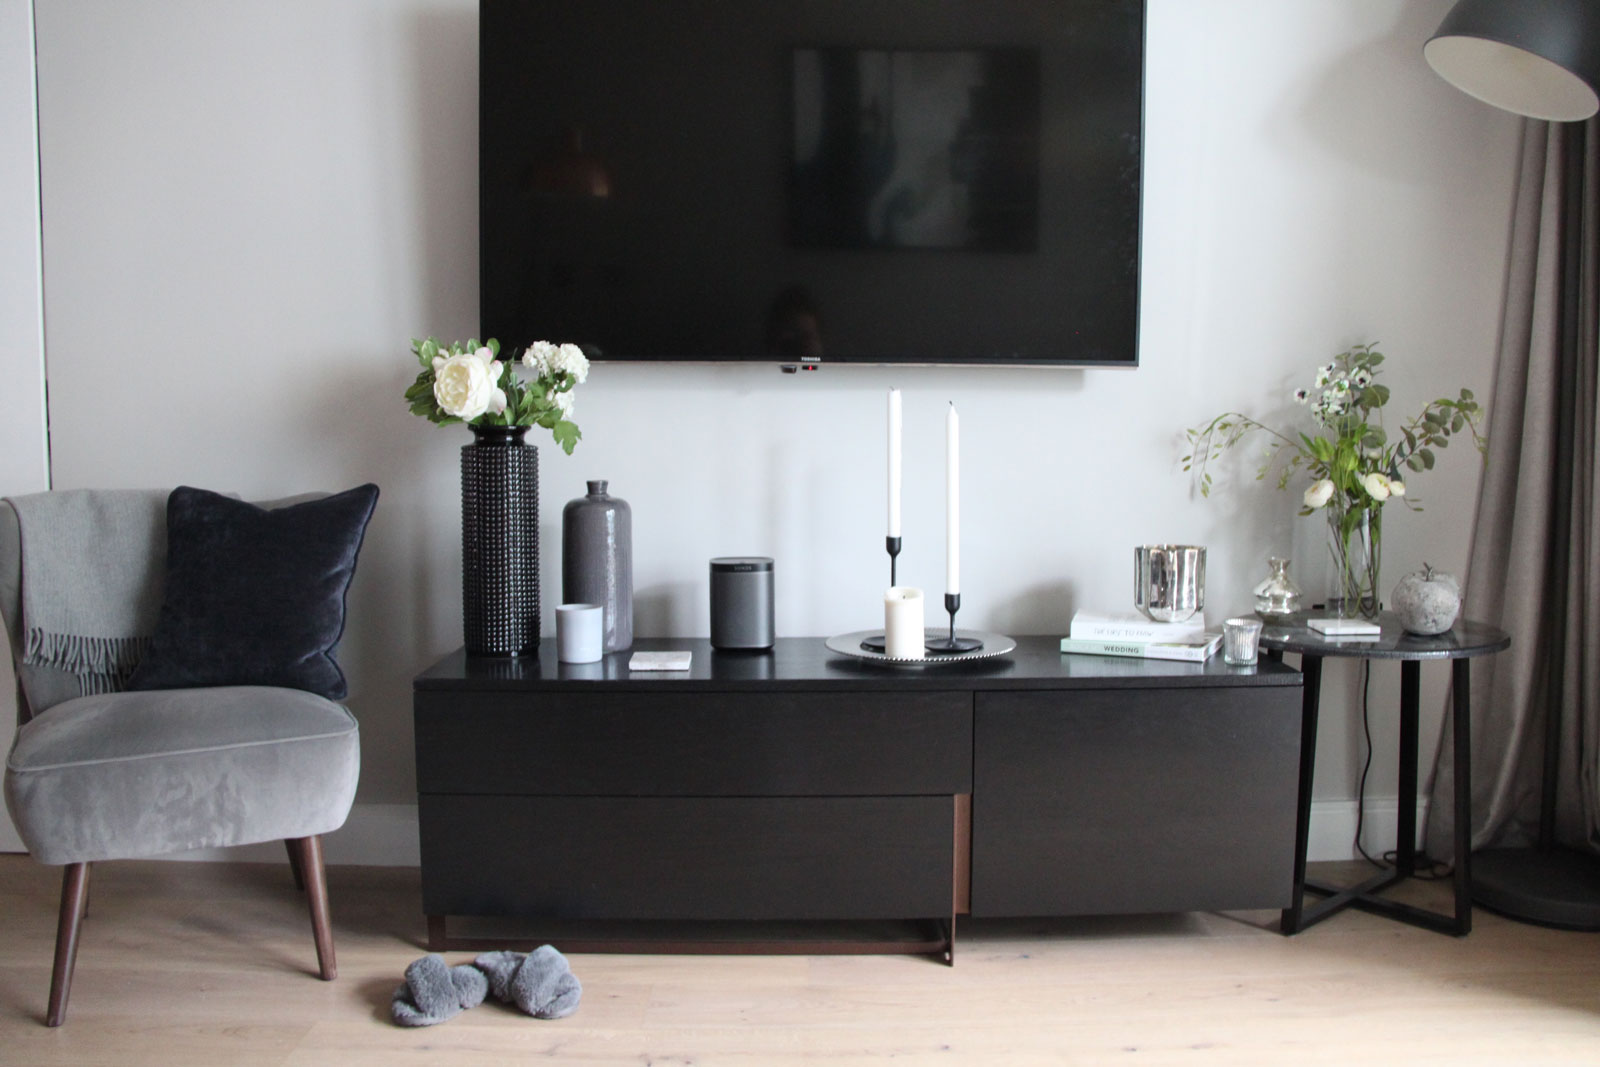 style your sideboard, sideboard styling ideas, sideboard styling, interior styling